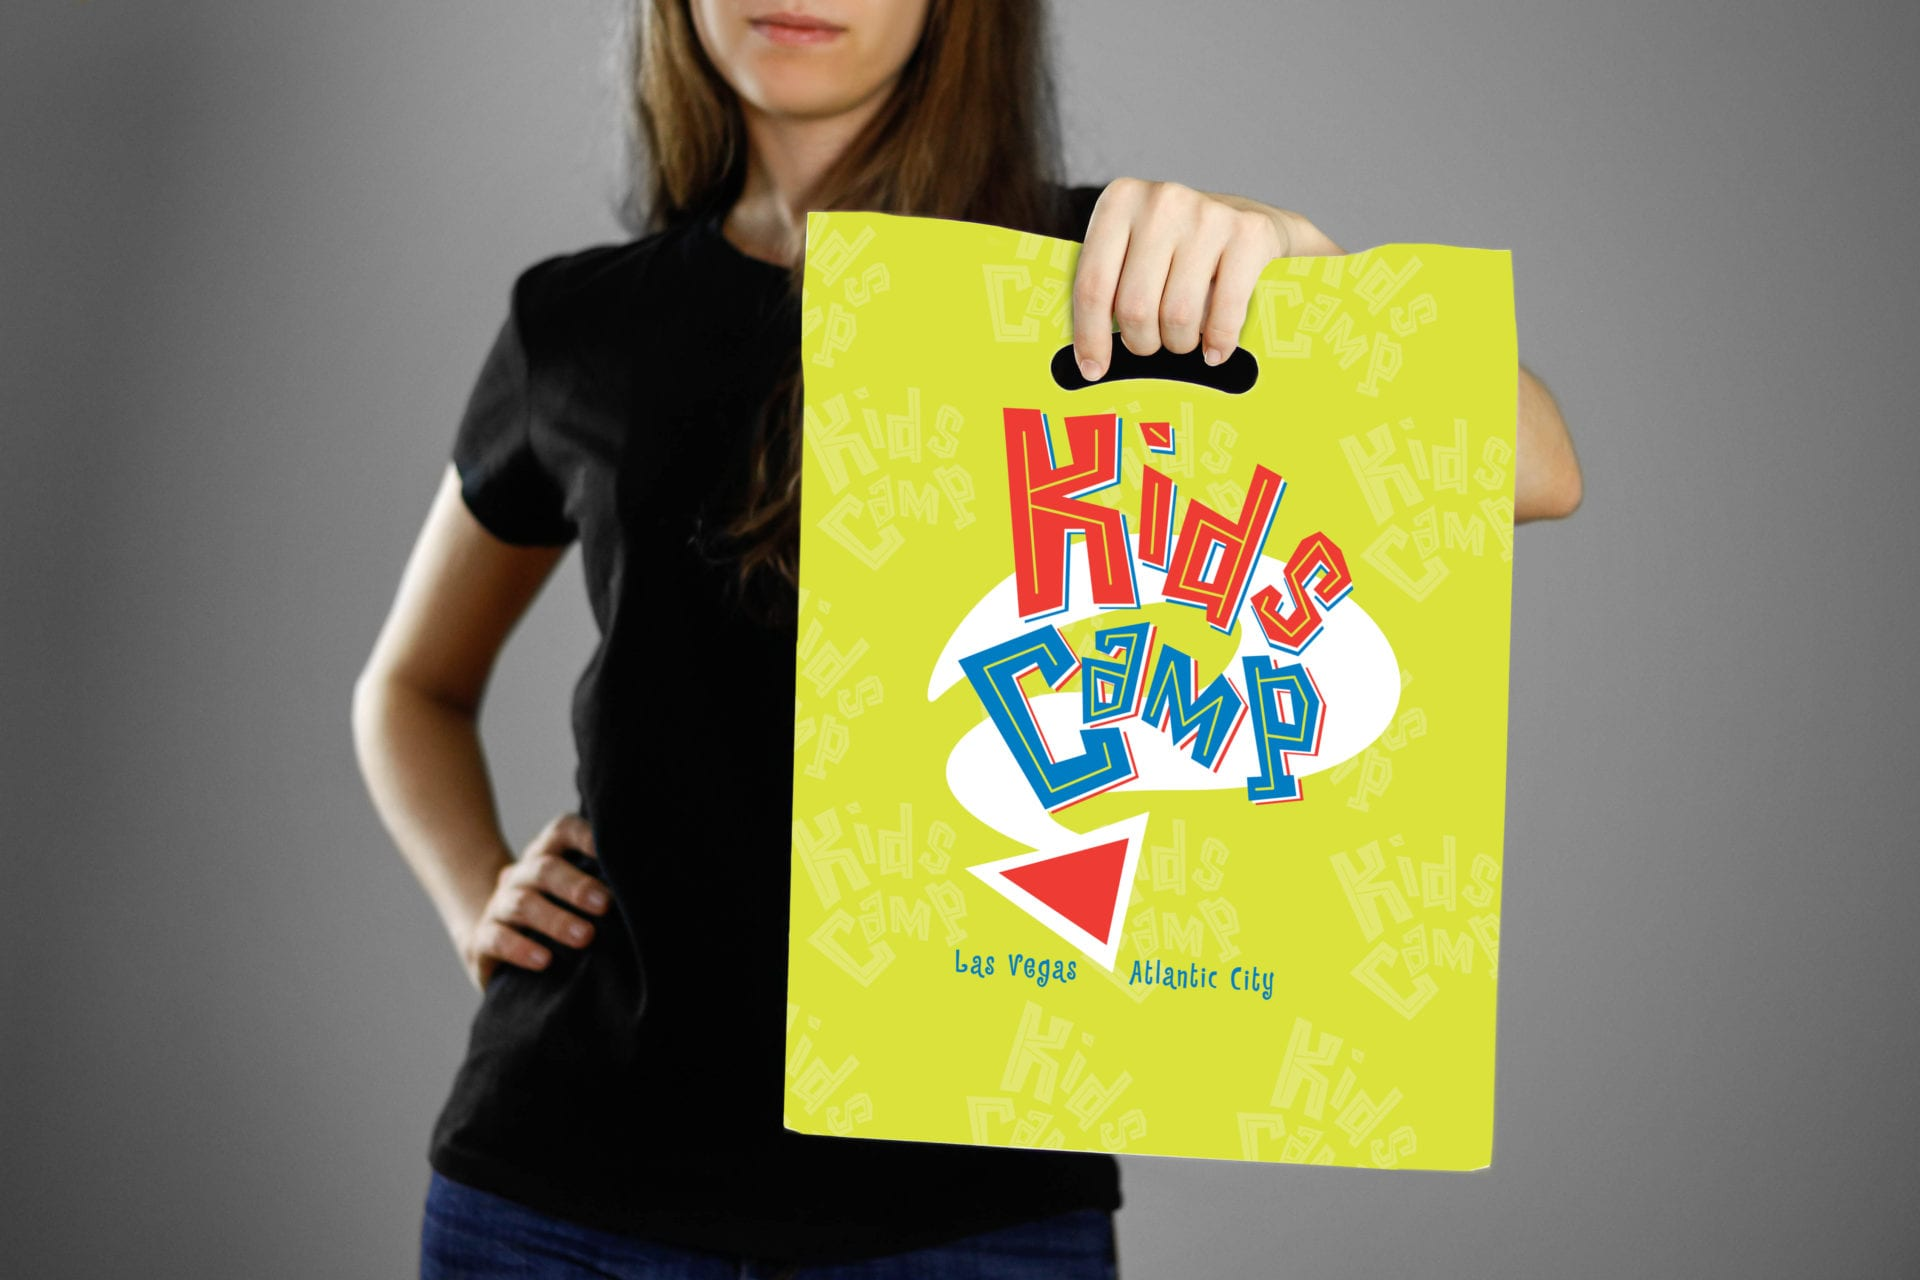 A woman holding a Marshall Retail Group Kids Camp branded bag